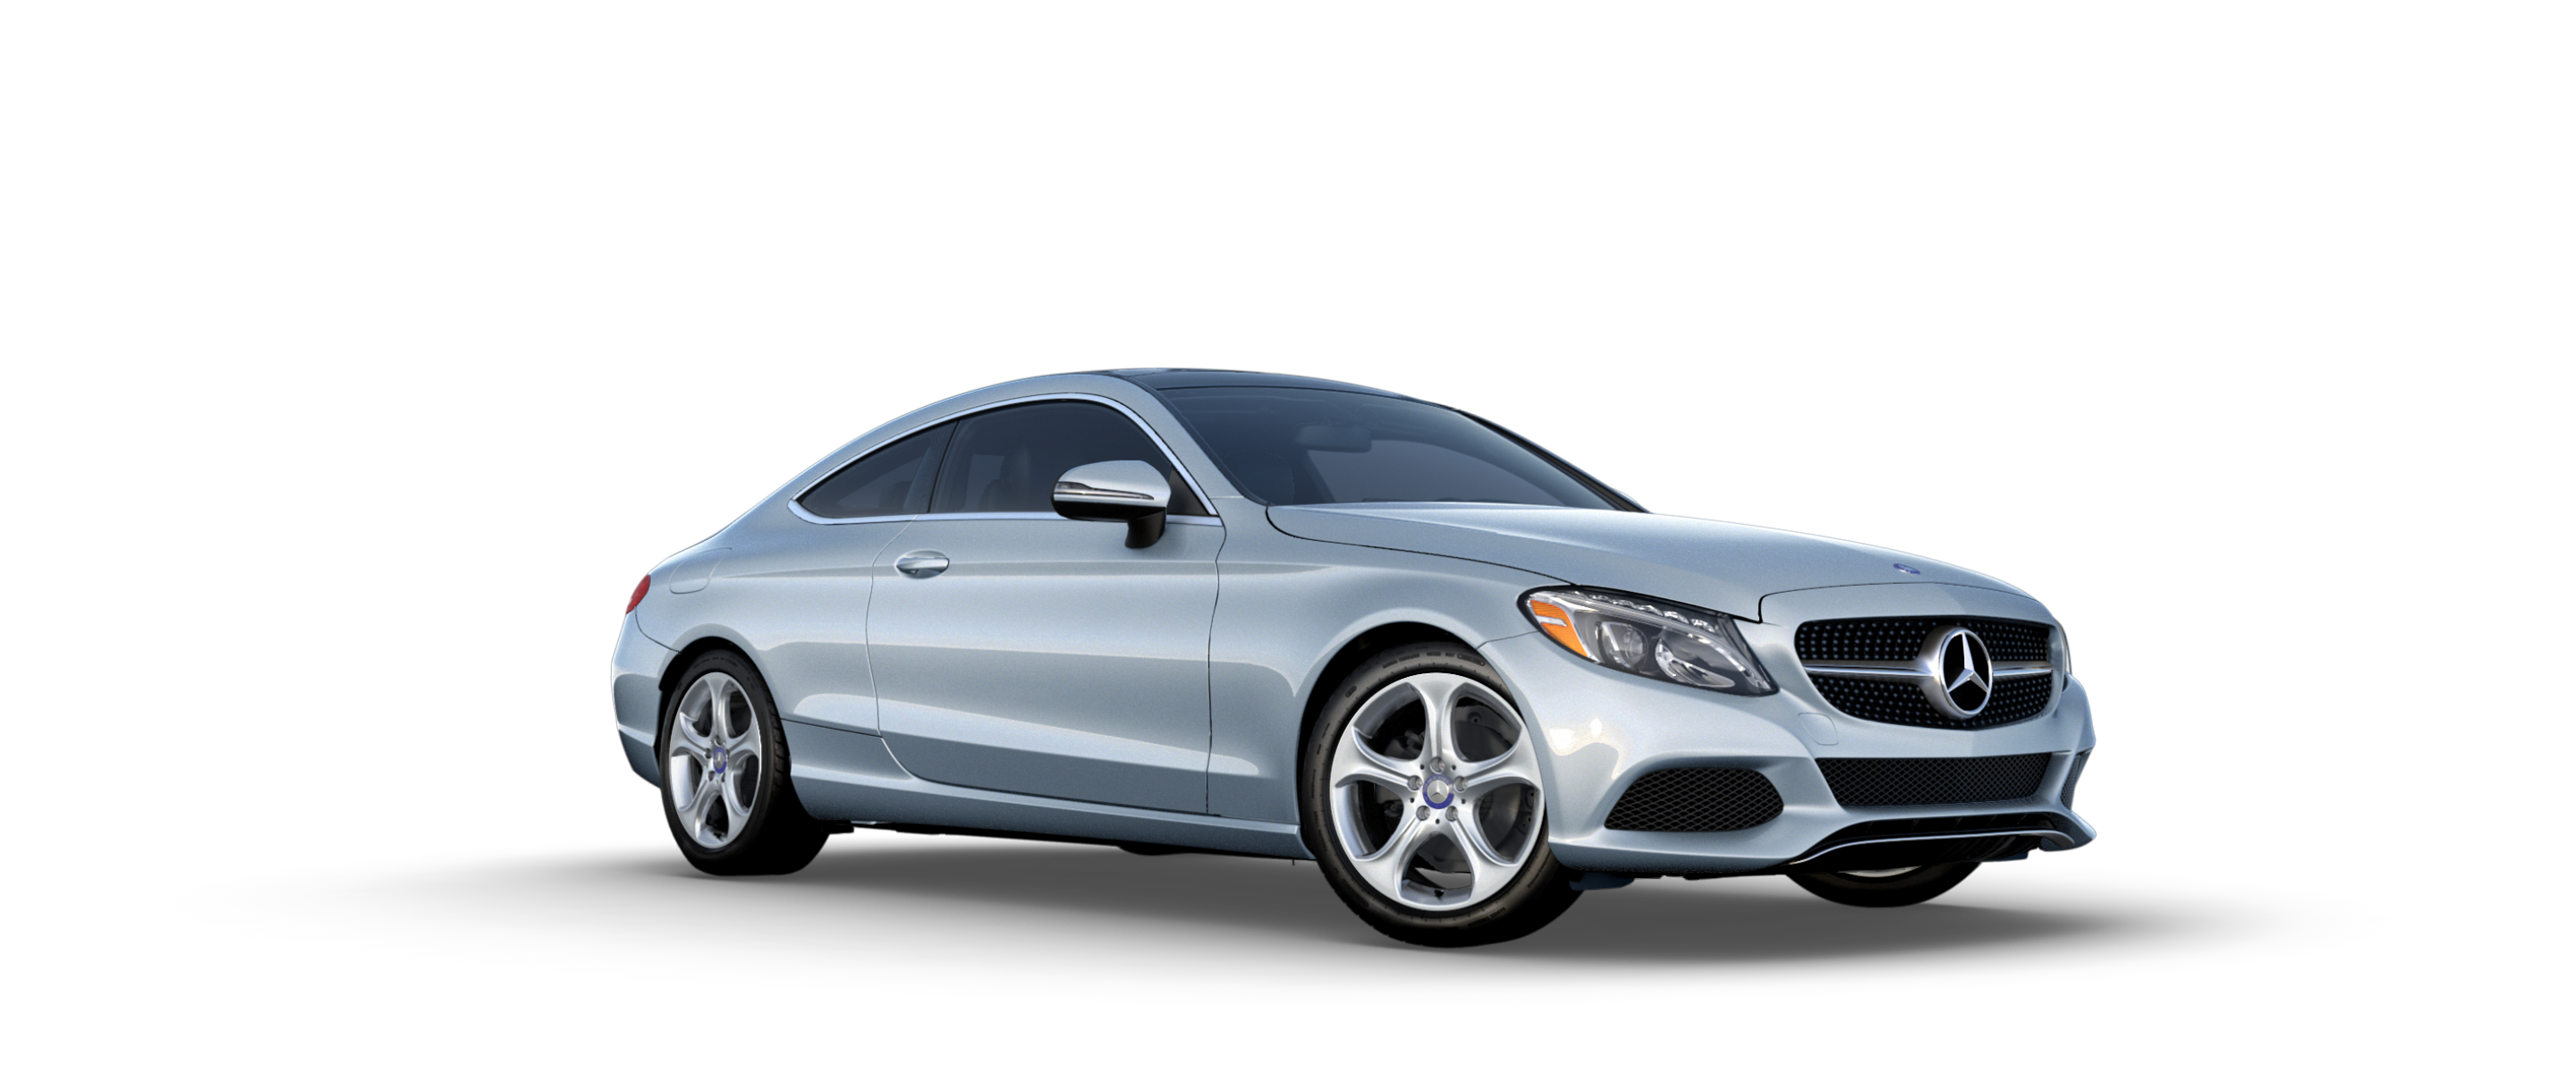 2017 mercedes benz c class exterior color options for Mercedes benz silver